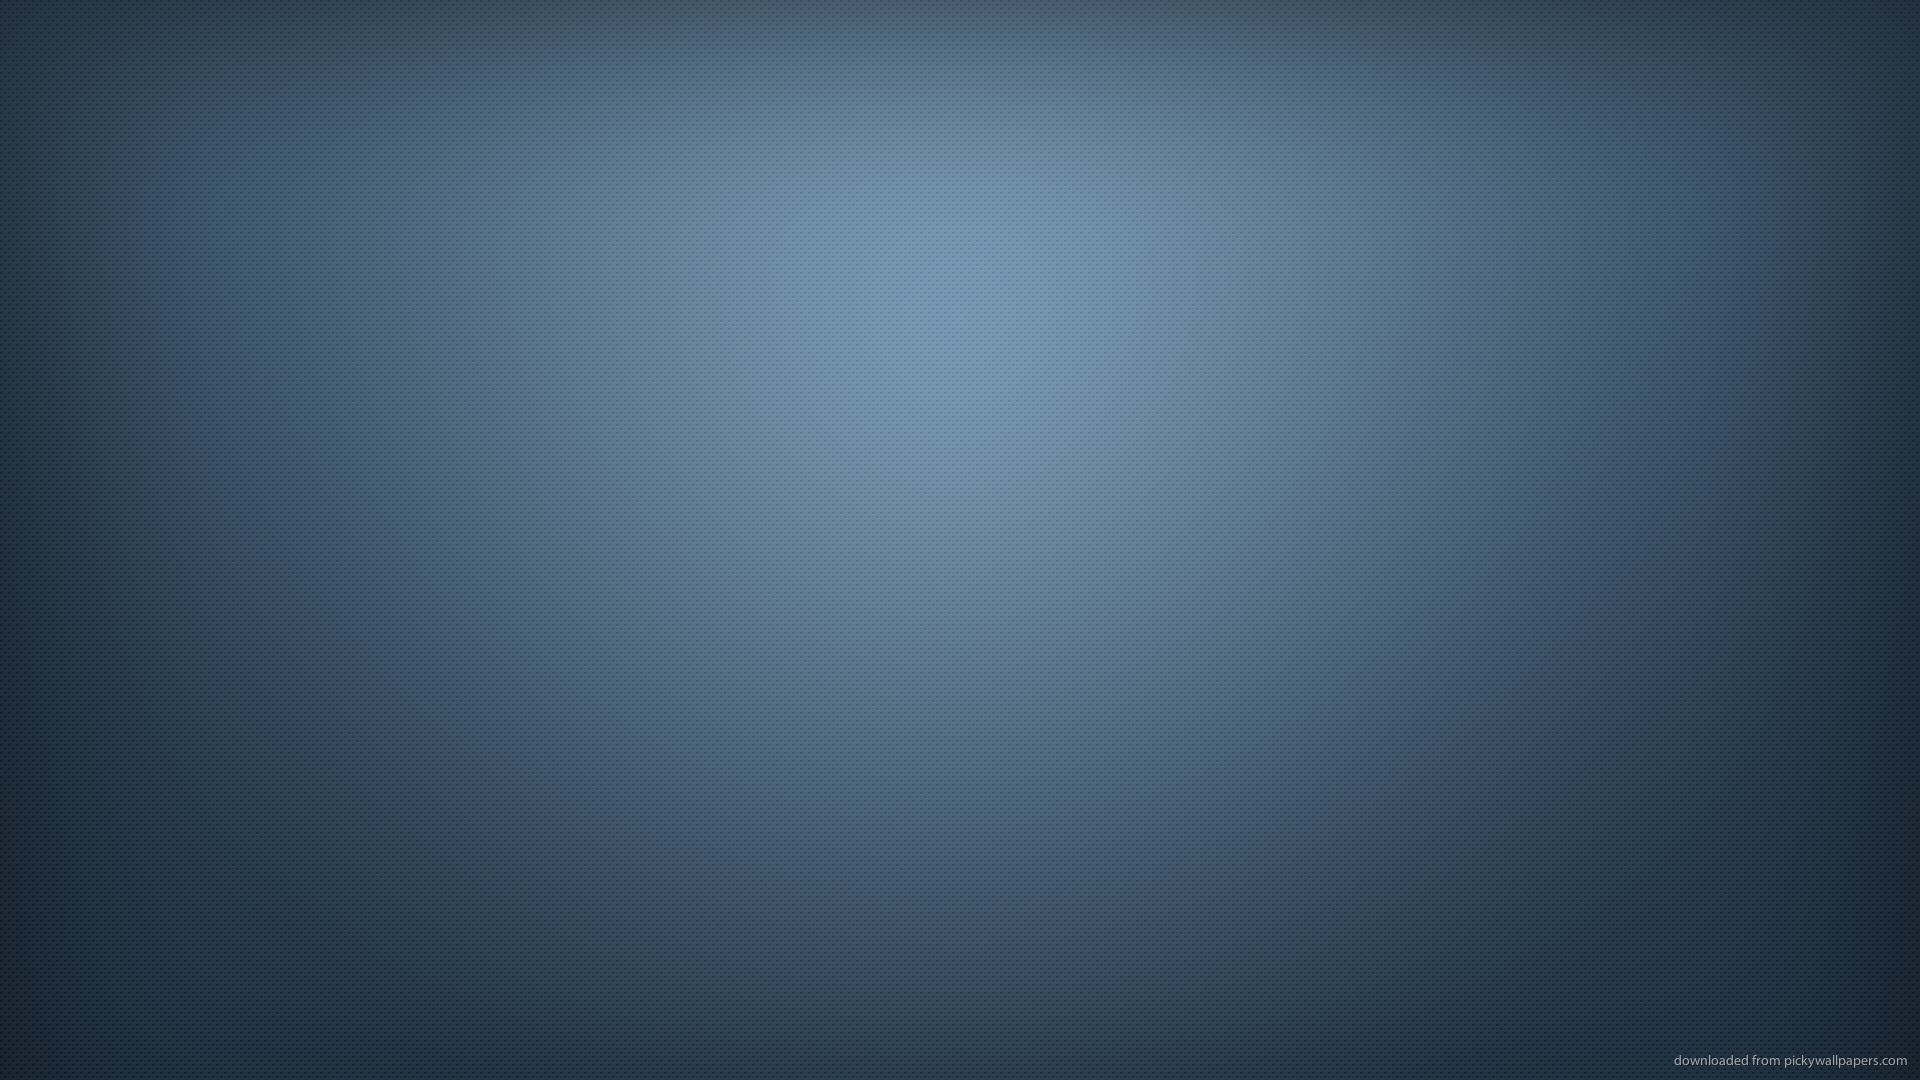 Simple Backgrounds wallpaper 1920x1080 47280 1920x1080